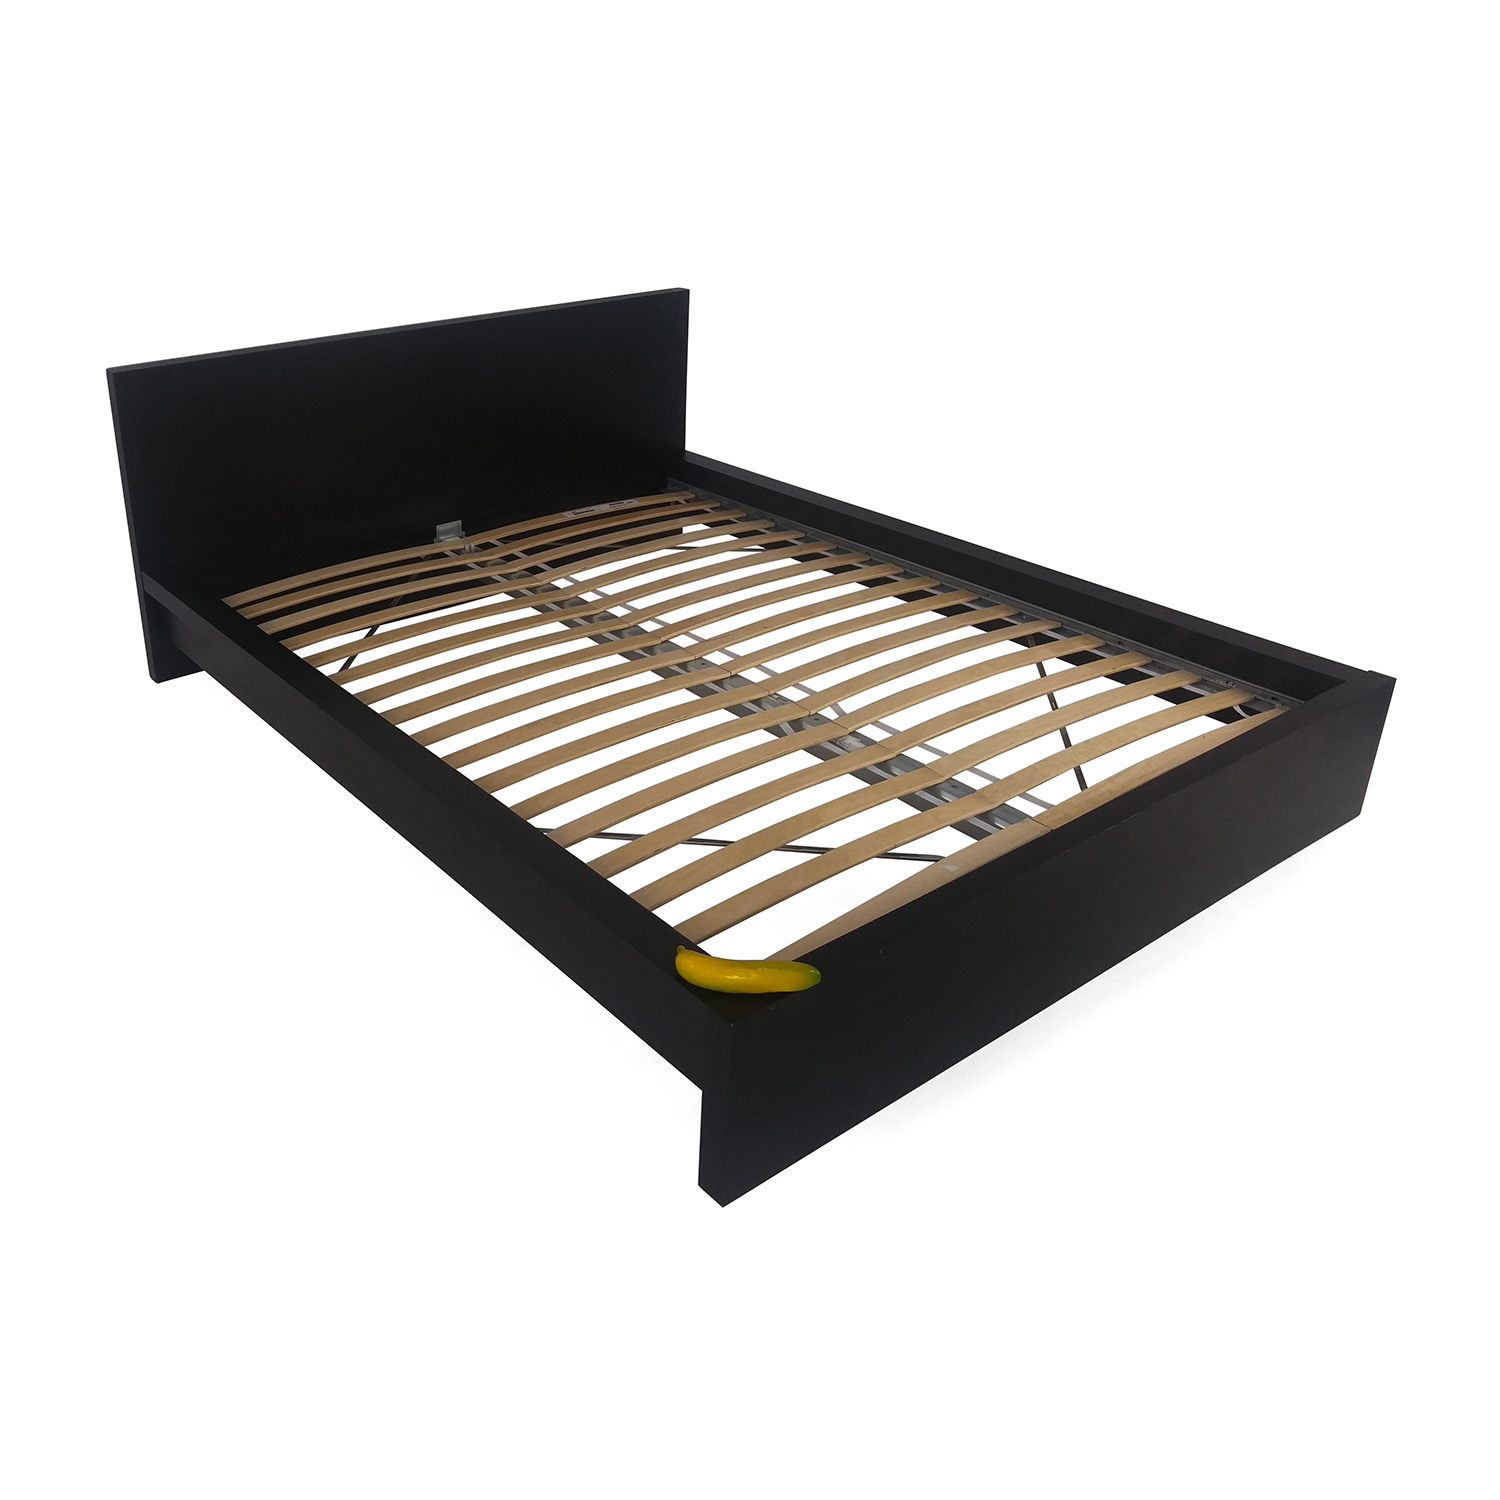 57 off ikea queen black bed frame beds for Ikea mattress frame